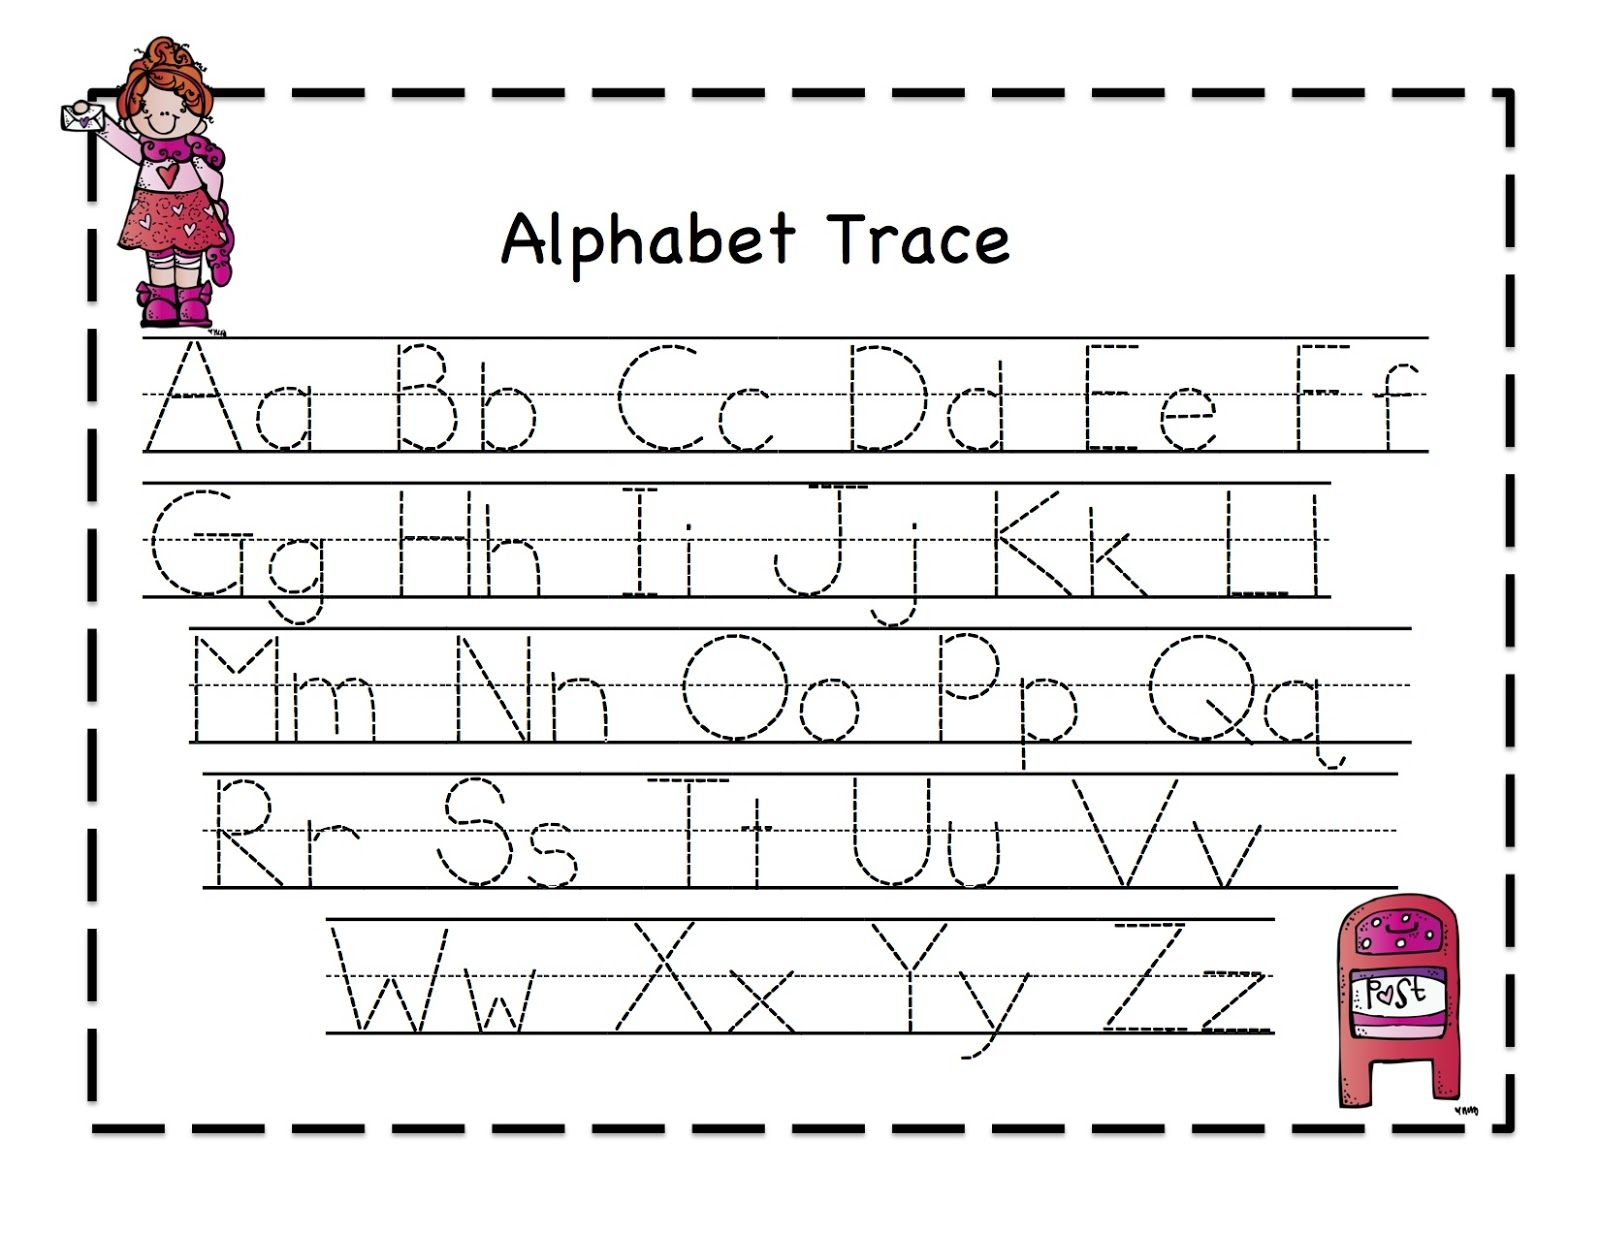 Tracing Sheets For Preschool Kids Alphabet Writing pertaining to Alphabet Tracing Paper